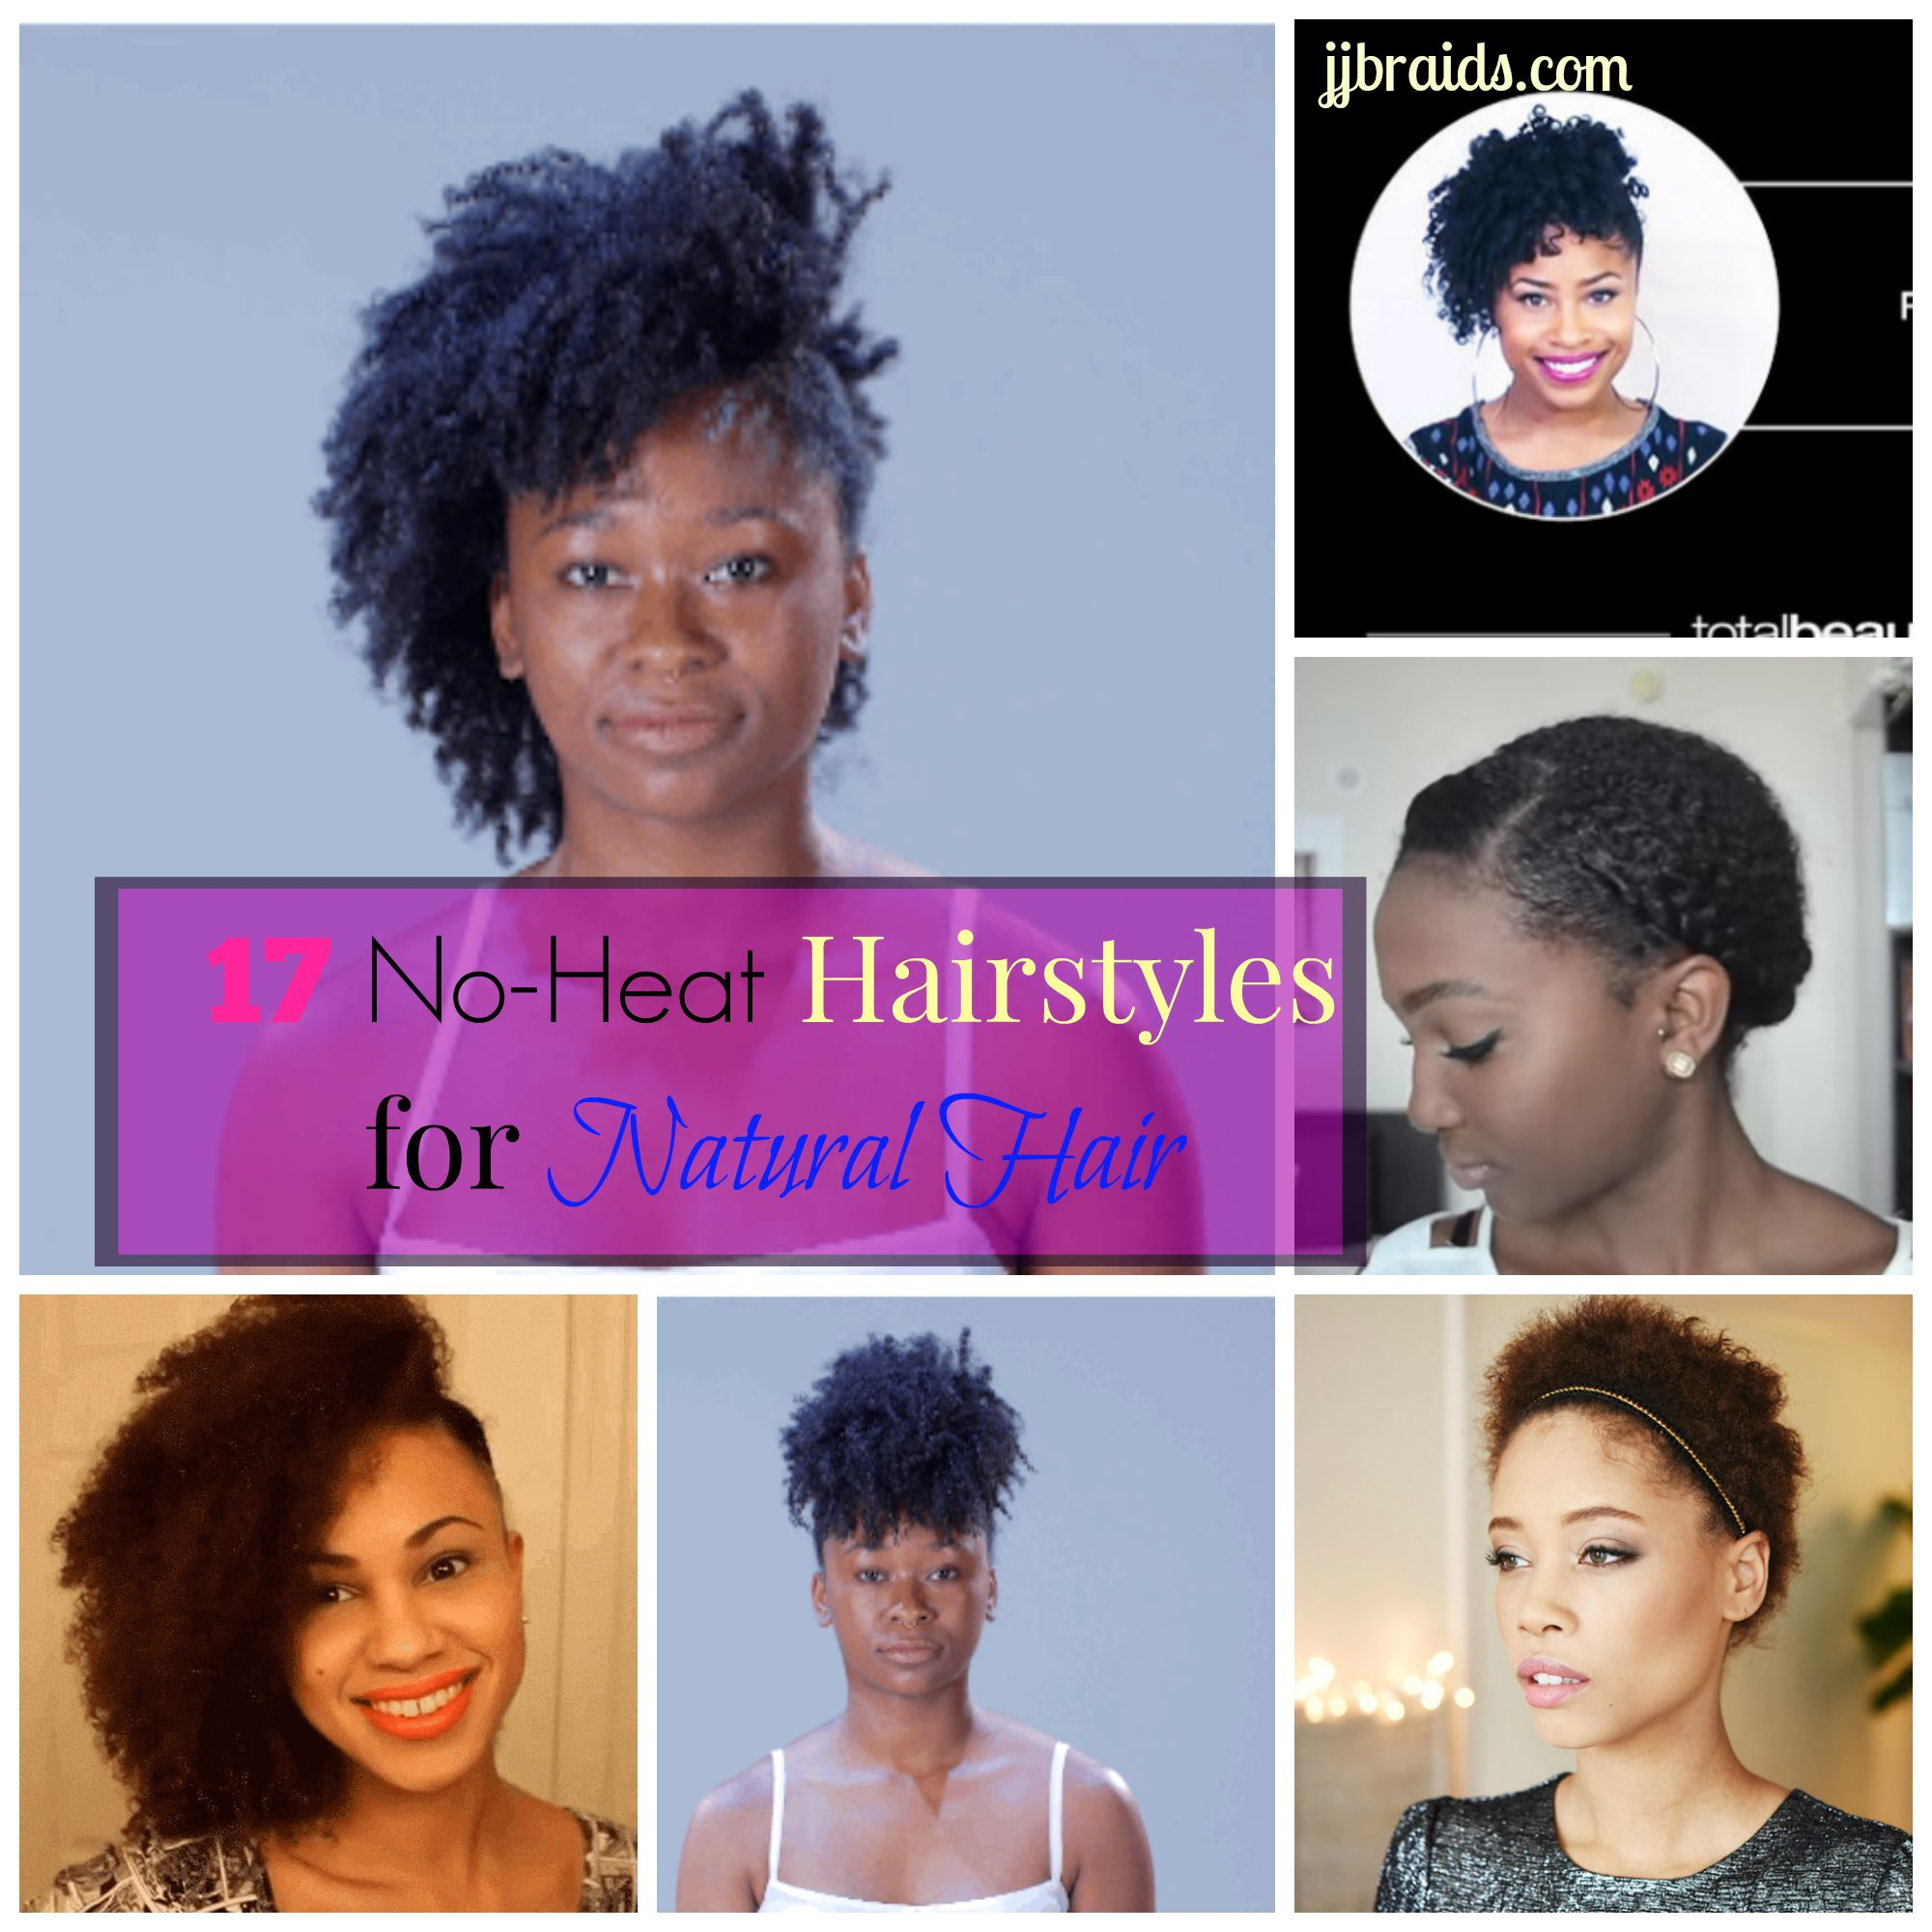 Watch 16 Ways to Make Sure Your Curly Hair Always Look it's Best video